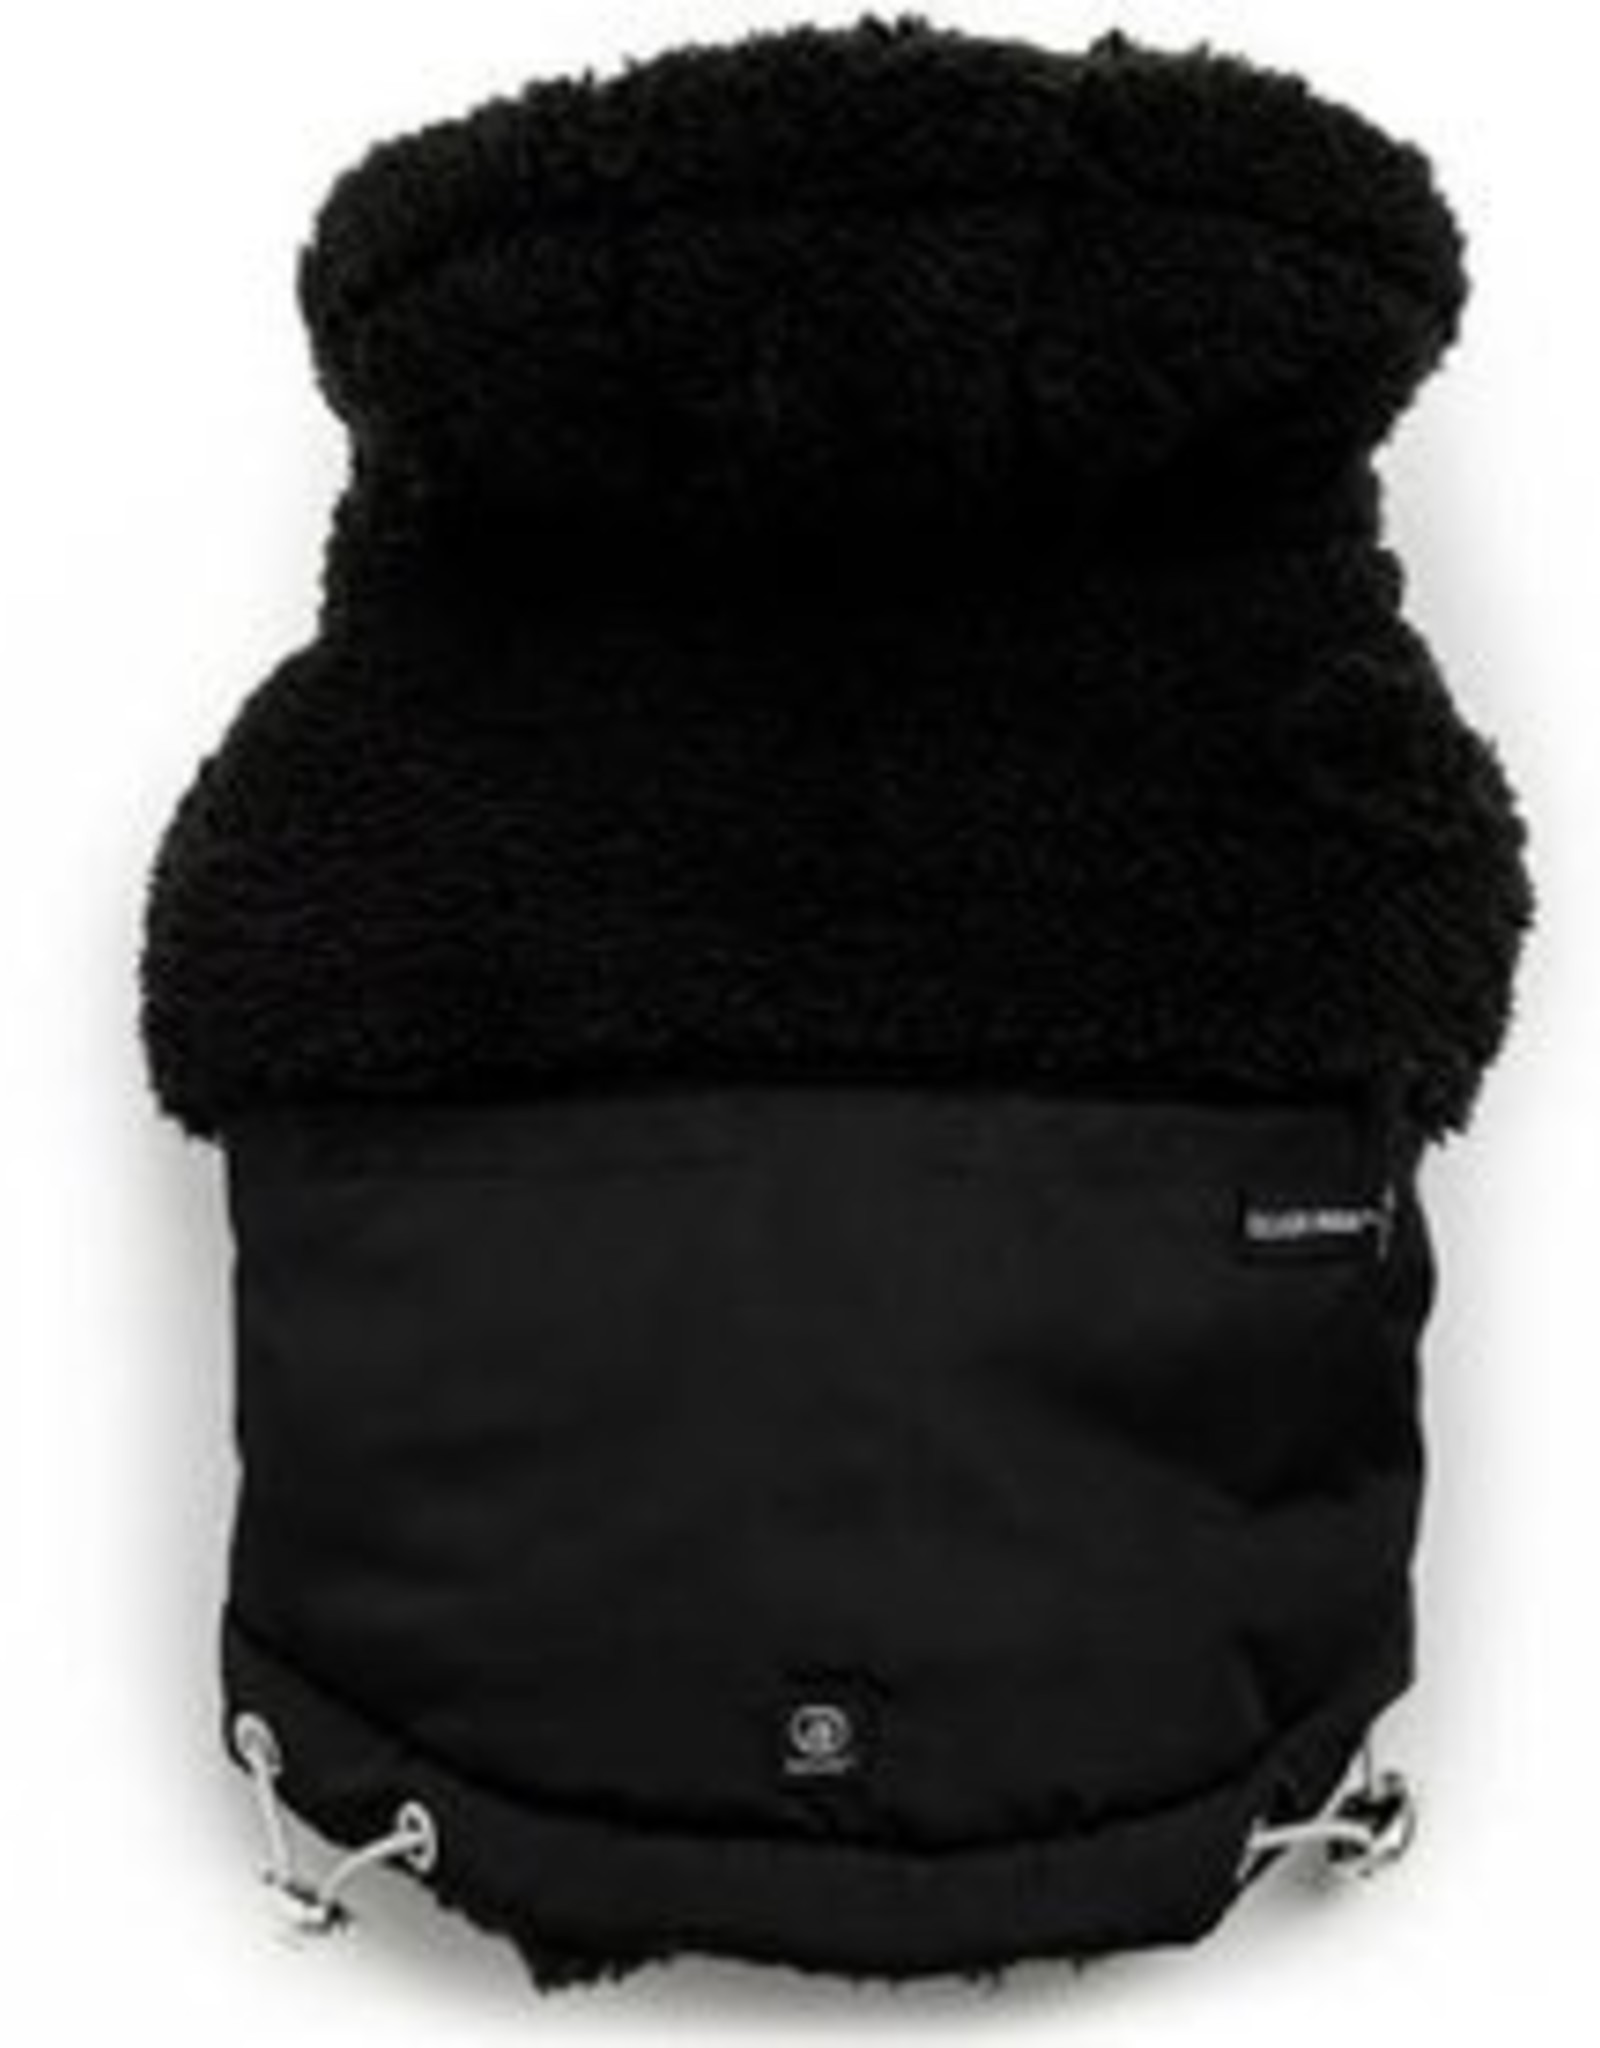 Silver Paw Silver Paw - Quilted Jacket Hoodie Black